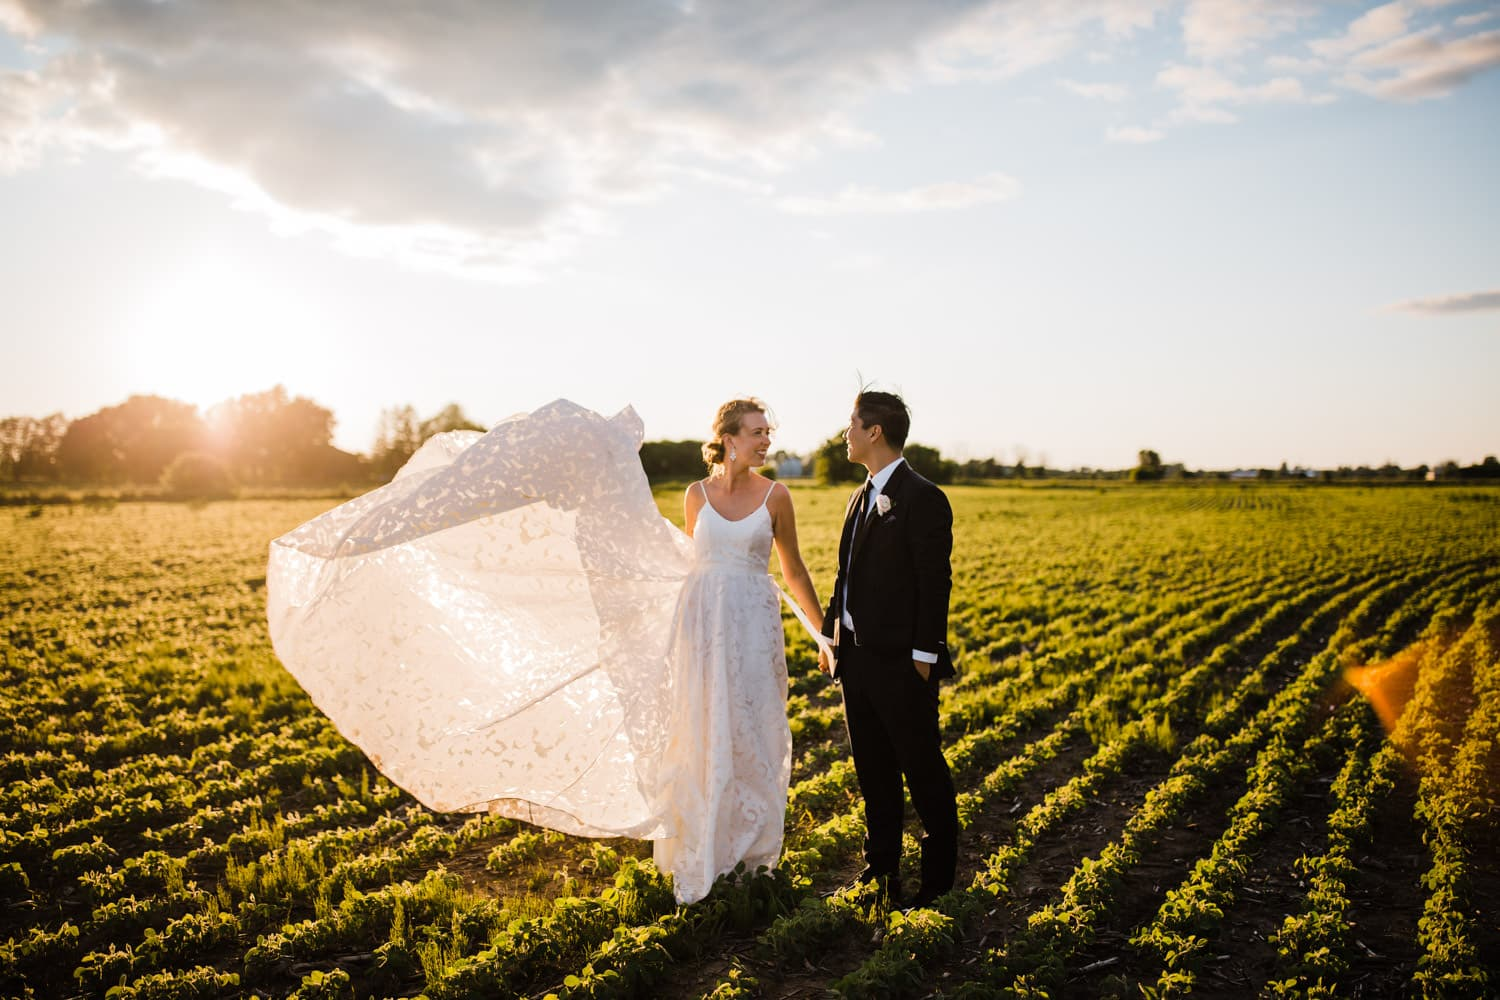 bride throws her dress in the wind in a field - carley teresa photography - ottawa backyard wedding